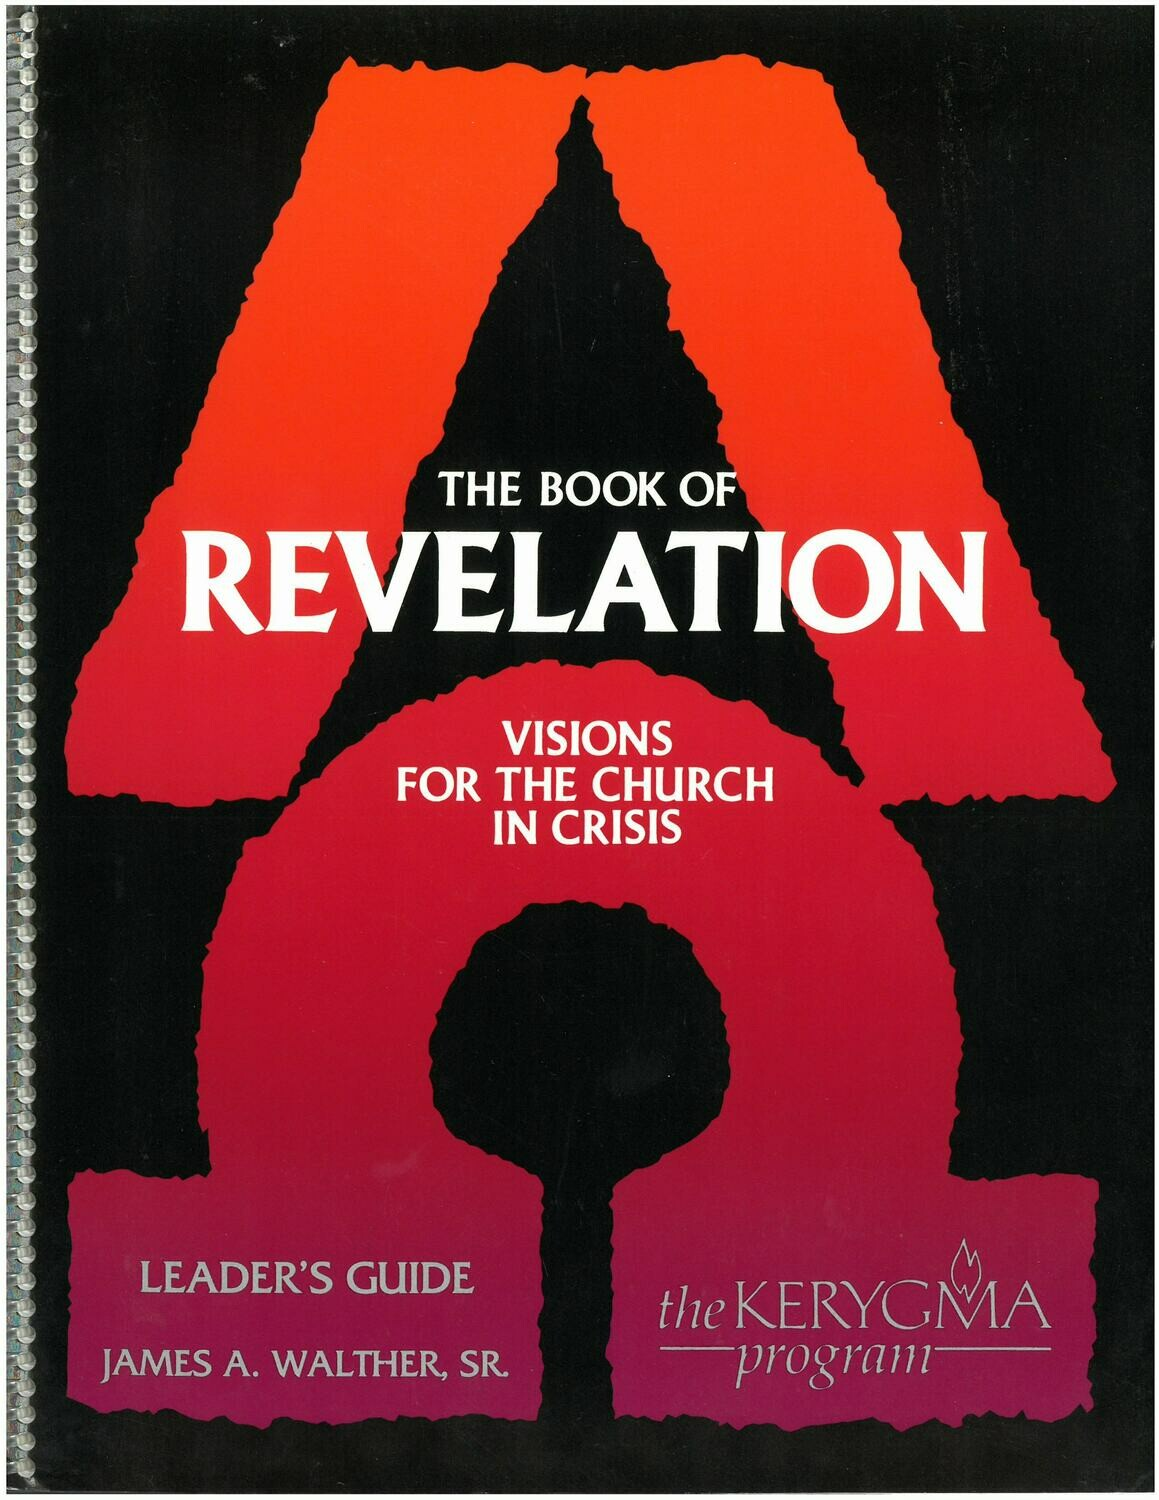 Book of Revelation: Visions for the Church in Crisis Leader Guide (Kerygma)